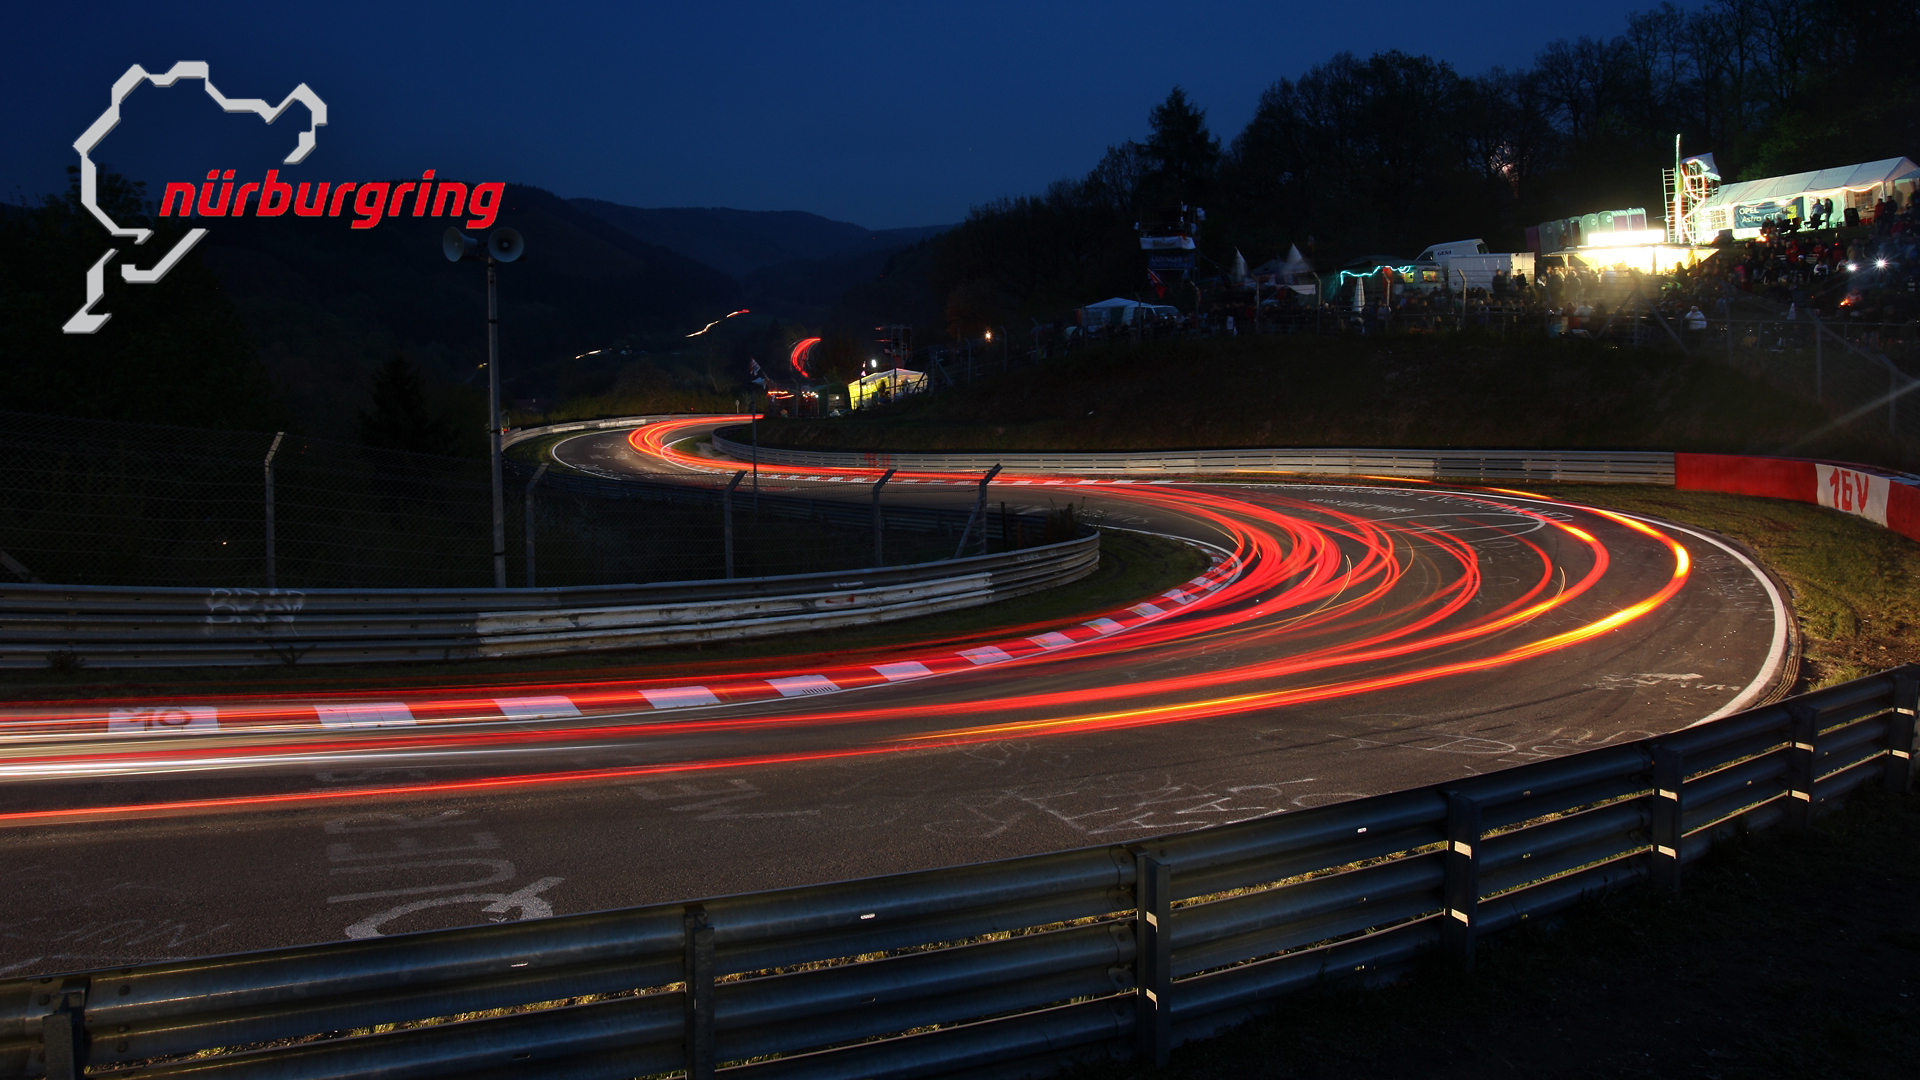 Nürburgring sold (AGAIN!) - to Russian billionaire